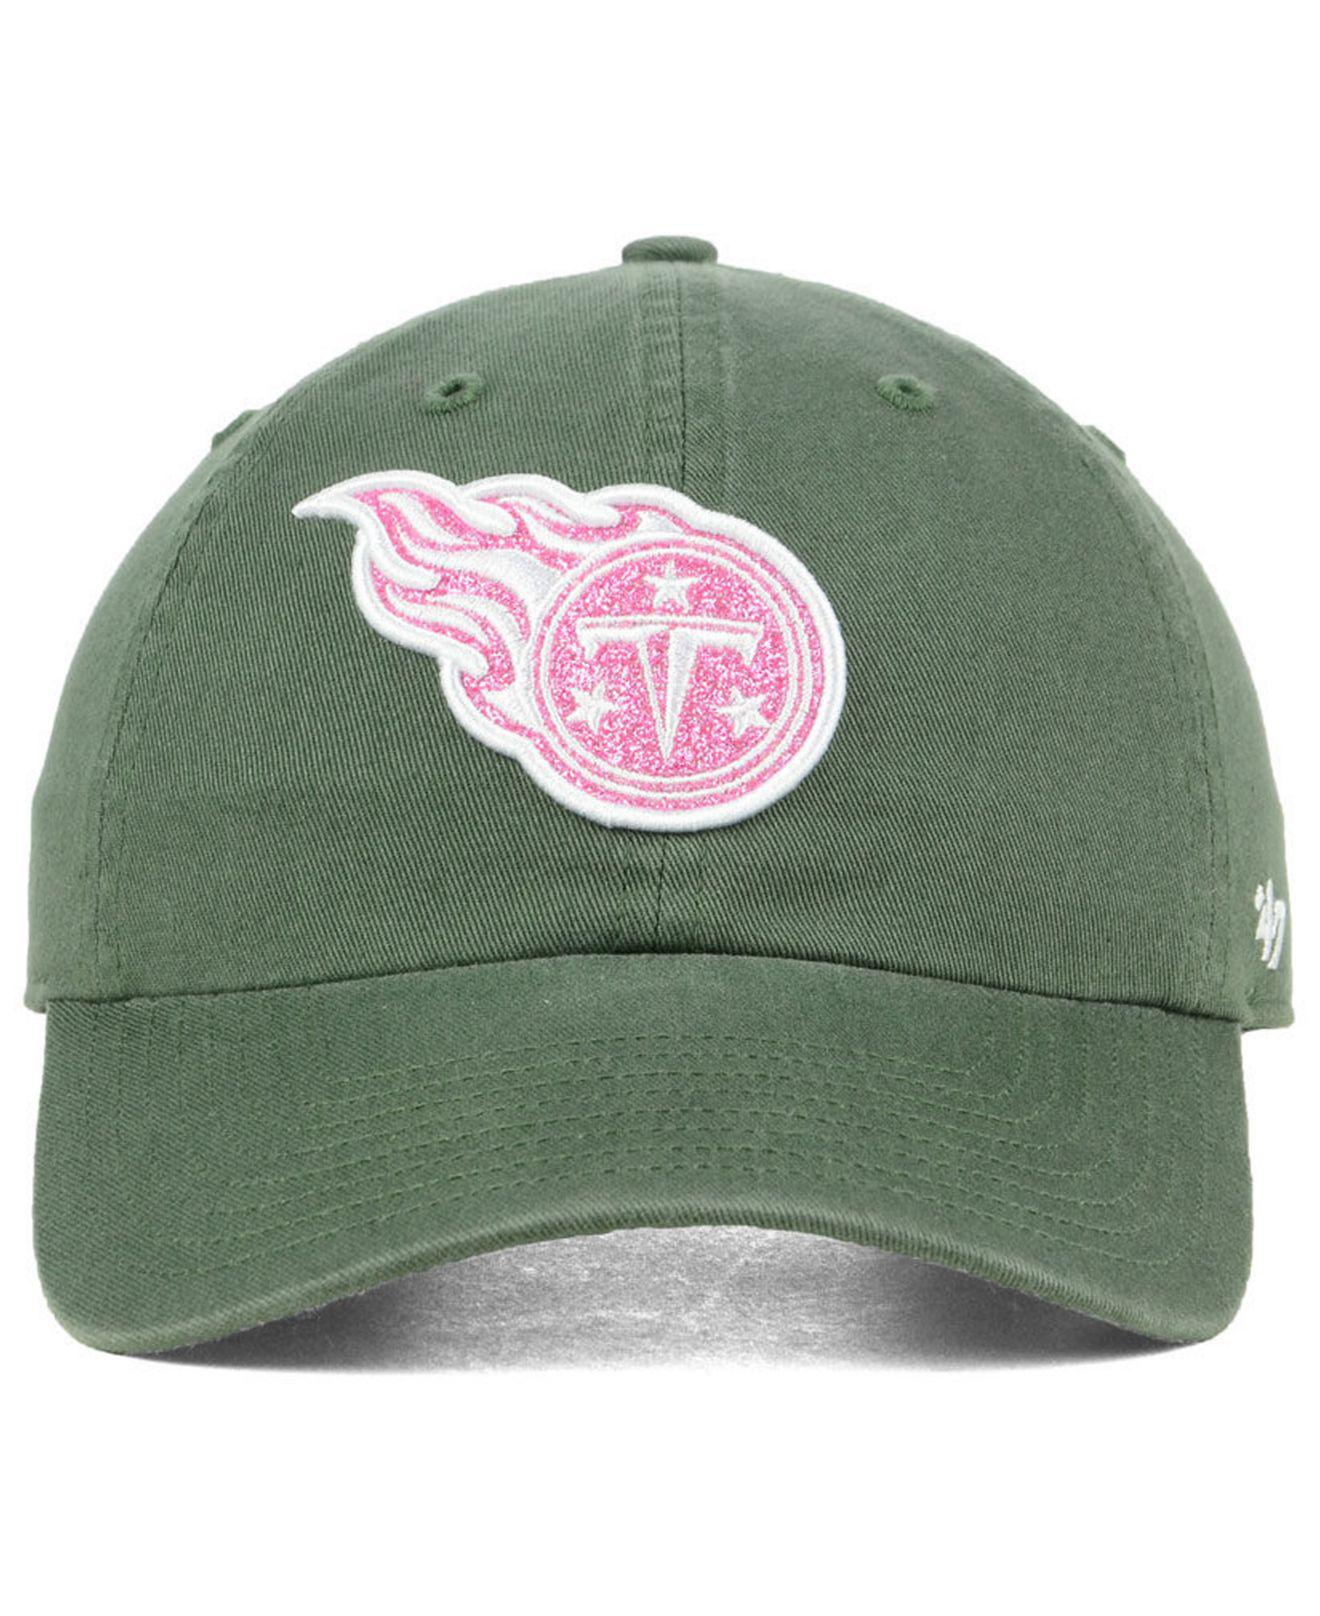 Lyst - 47 Brand Tennessee Titans Moss Glitta Clean Up Cap in Green 8c8a54aec